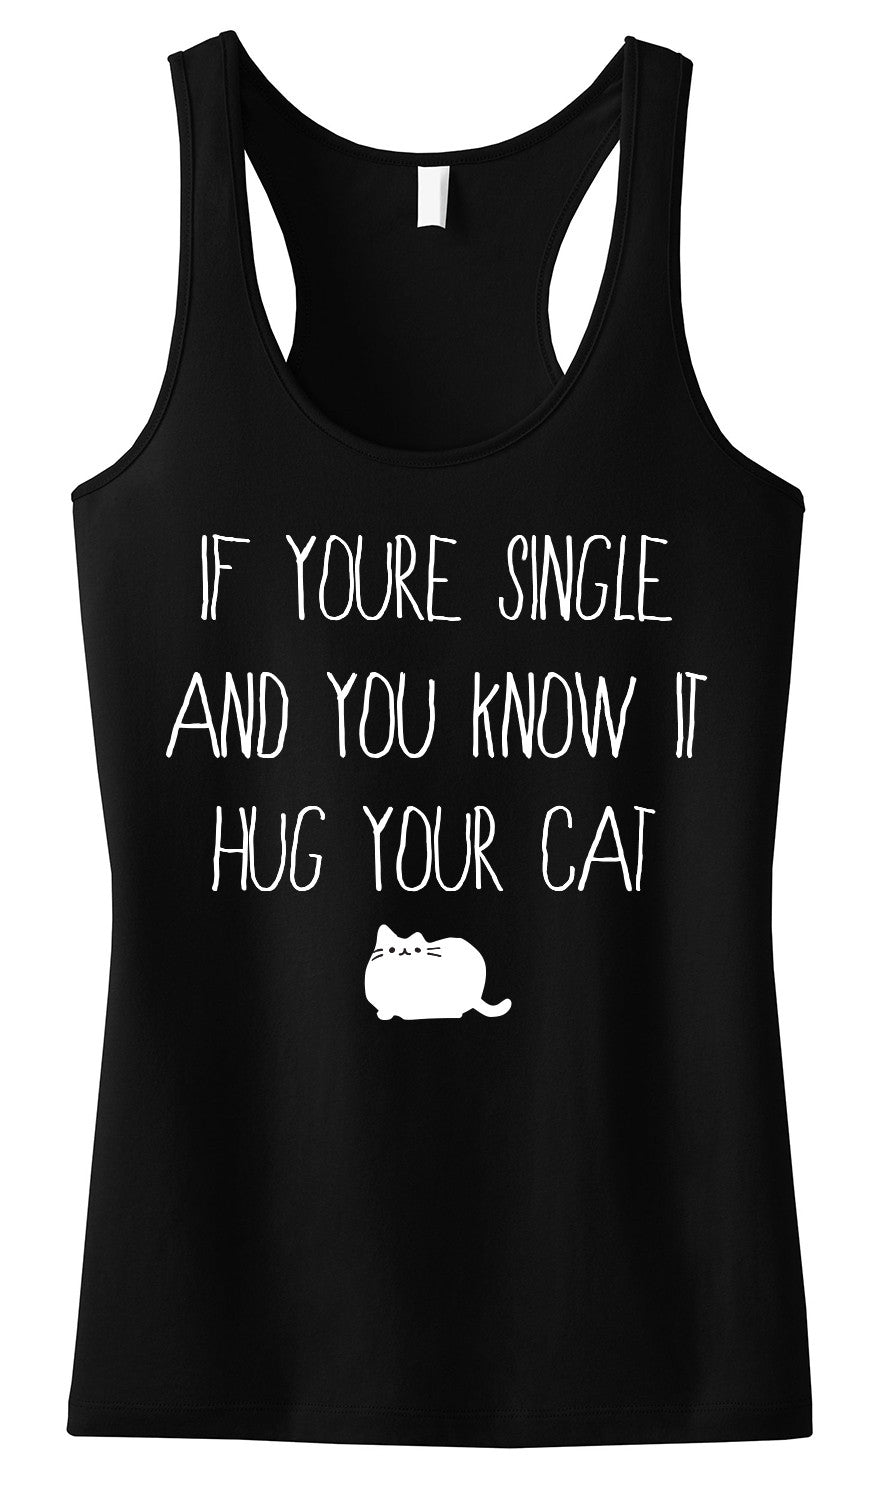 If You're Single, and You Know it, HUG YOUR CAT Tank Top Black